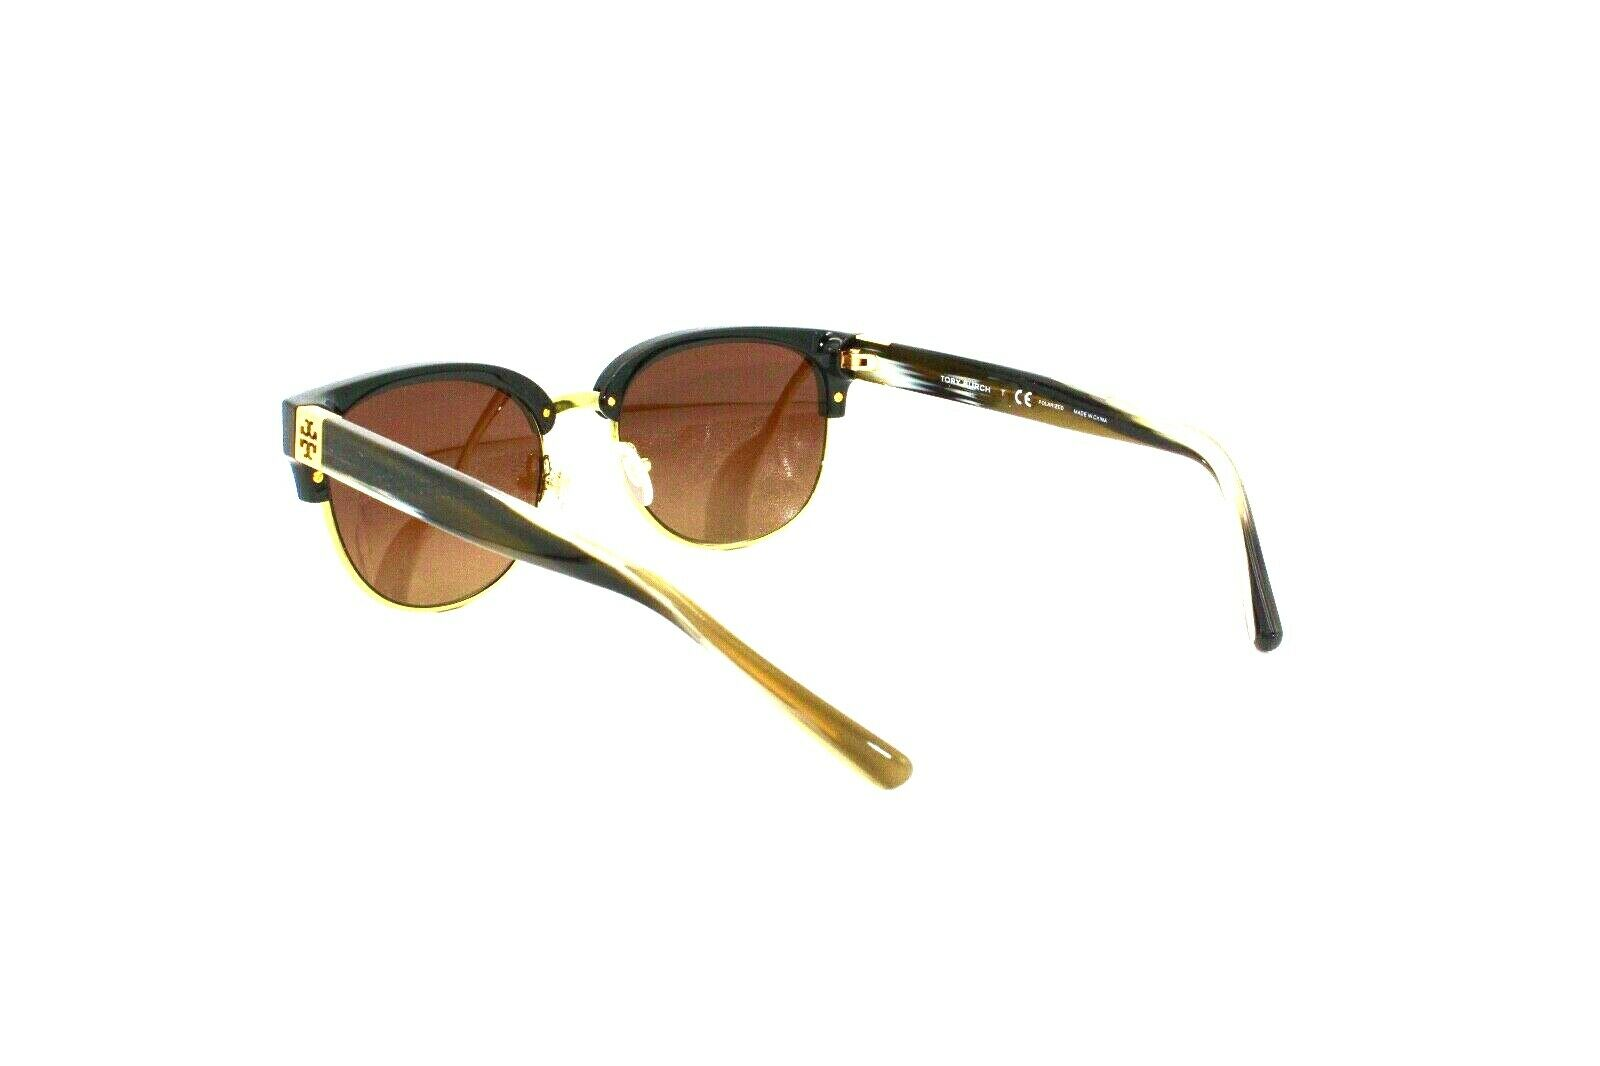 Tory Burch Polarized Sunglasses TY 9047 1606T5 52 18 140 3P - Mydesigneroptic